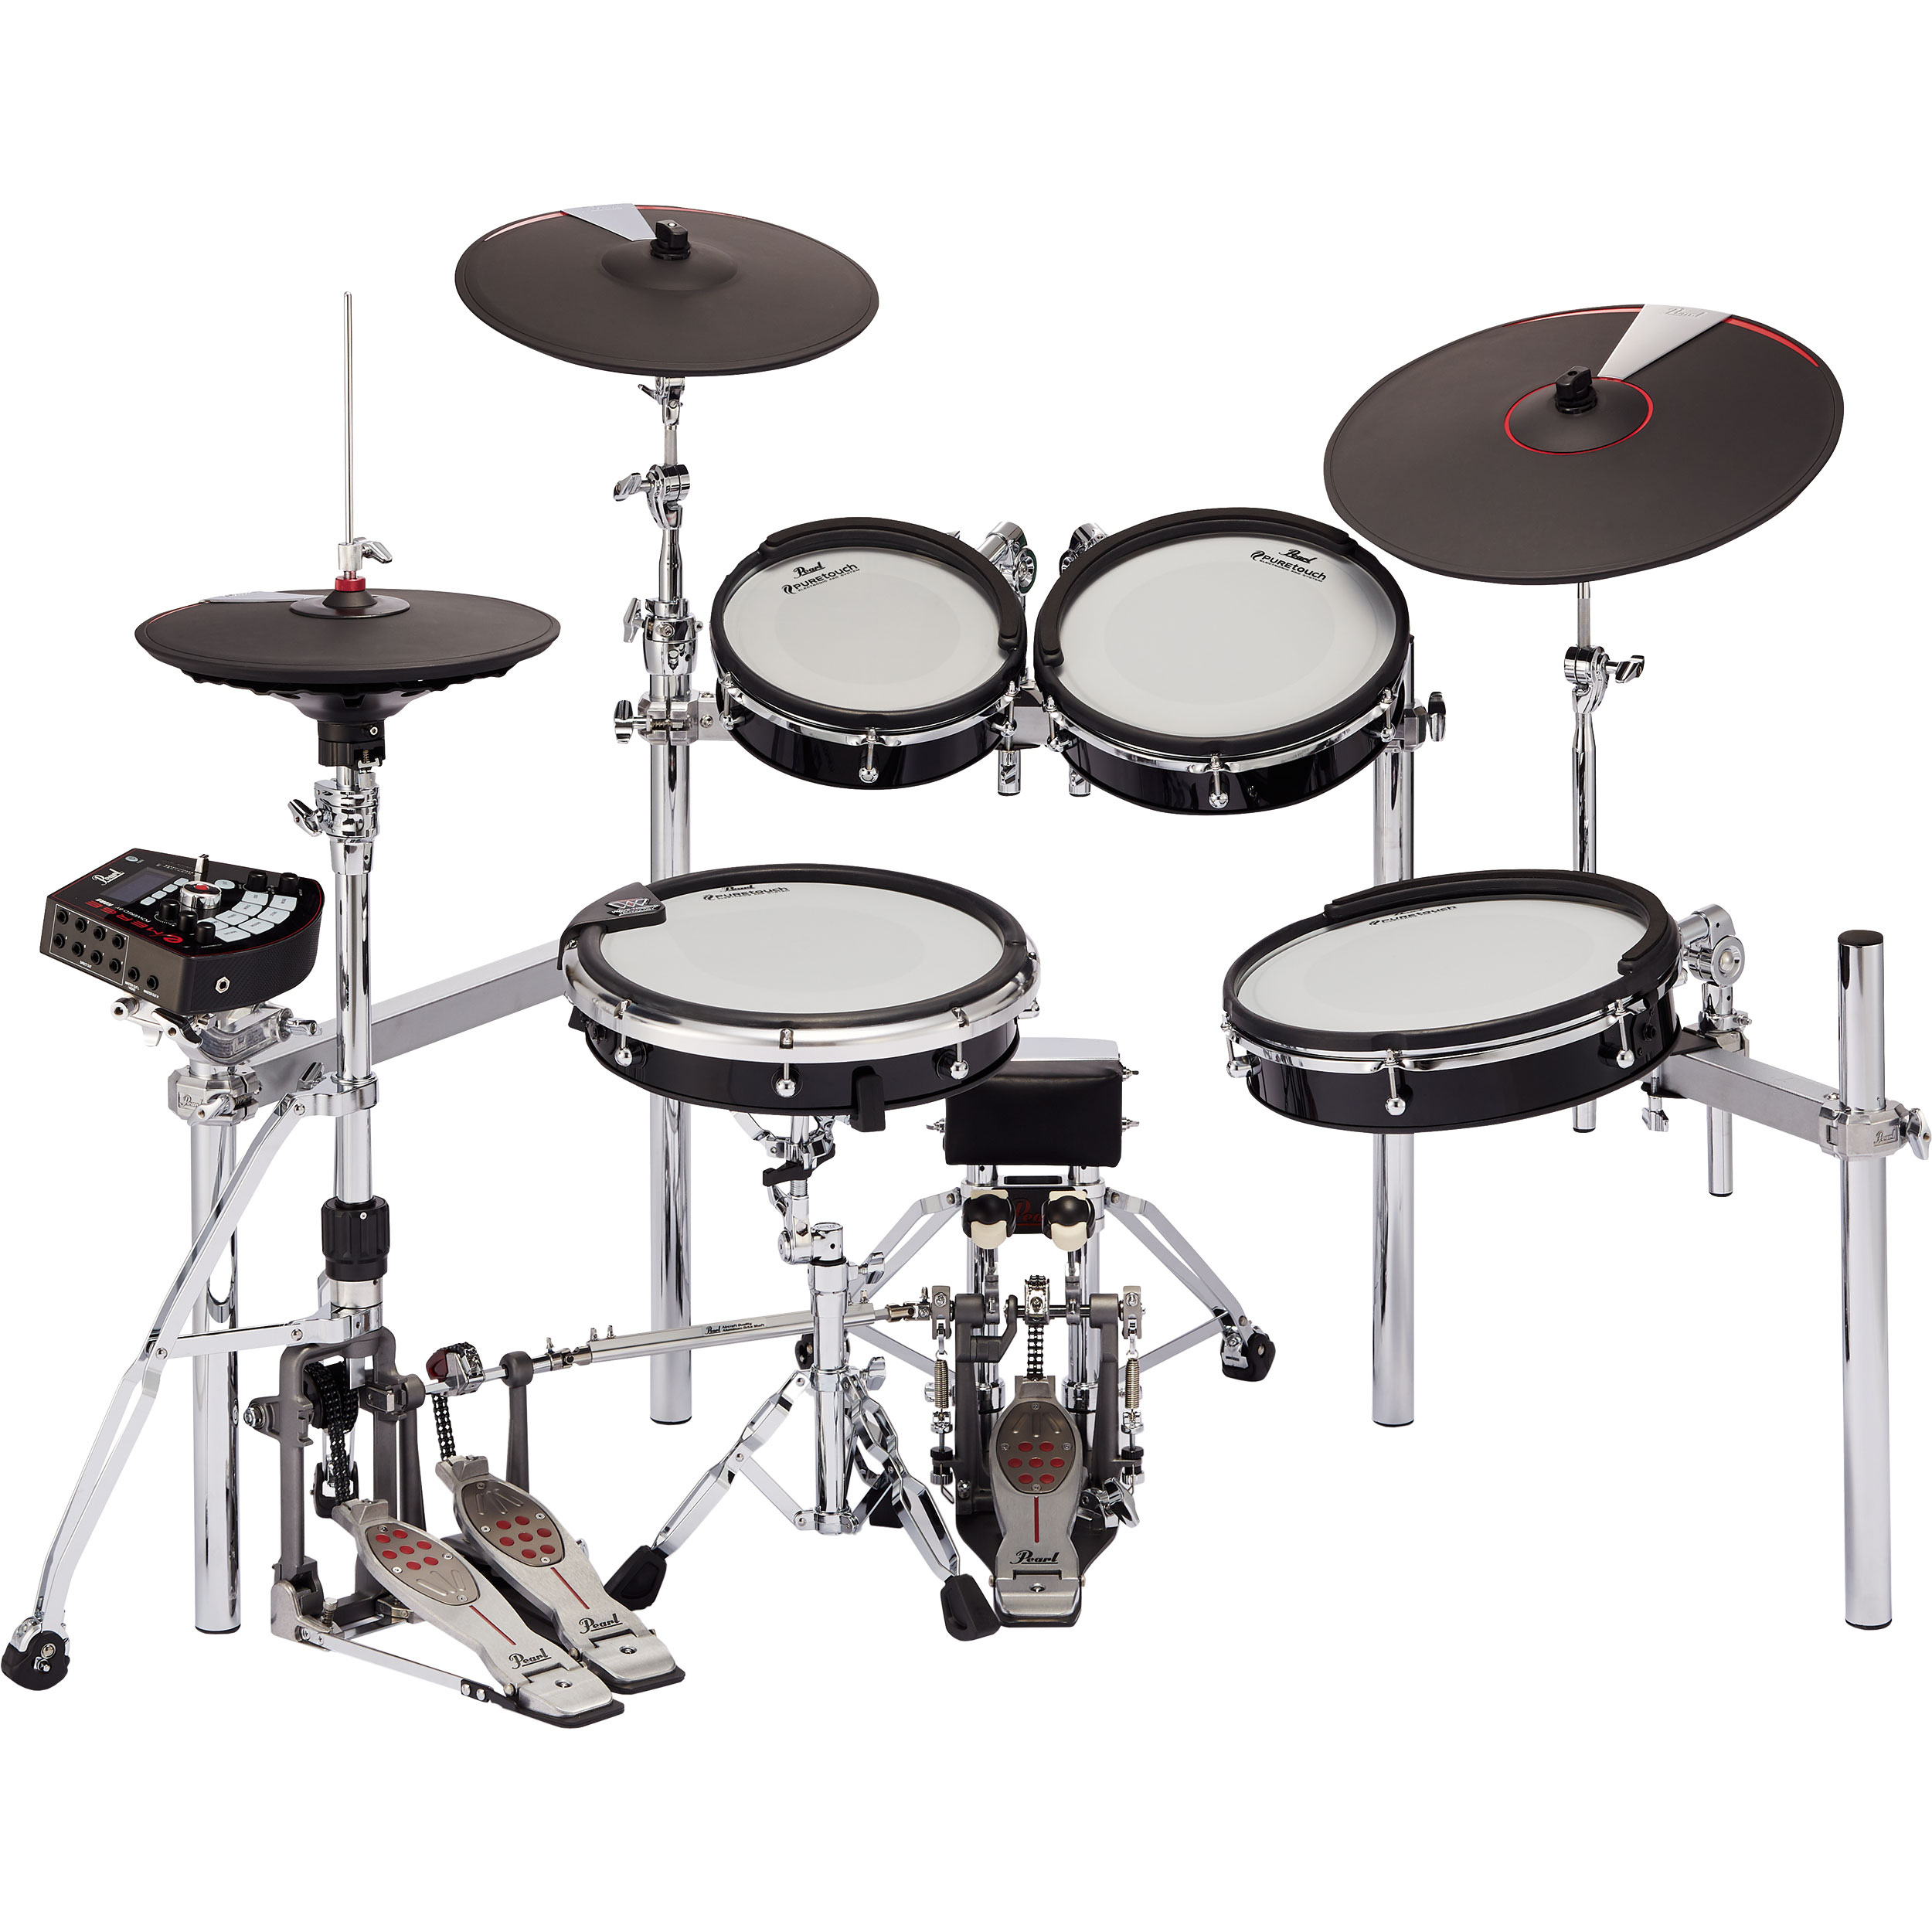 """Pearl e/MERGE 5-Piece Traditional Electronic Drum Set with Hardware and Cymbal Pads (Kick Pad, 10/12/14"""" Toms, and 14"""" Snare Pads)"""